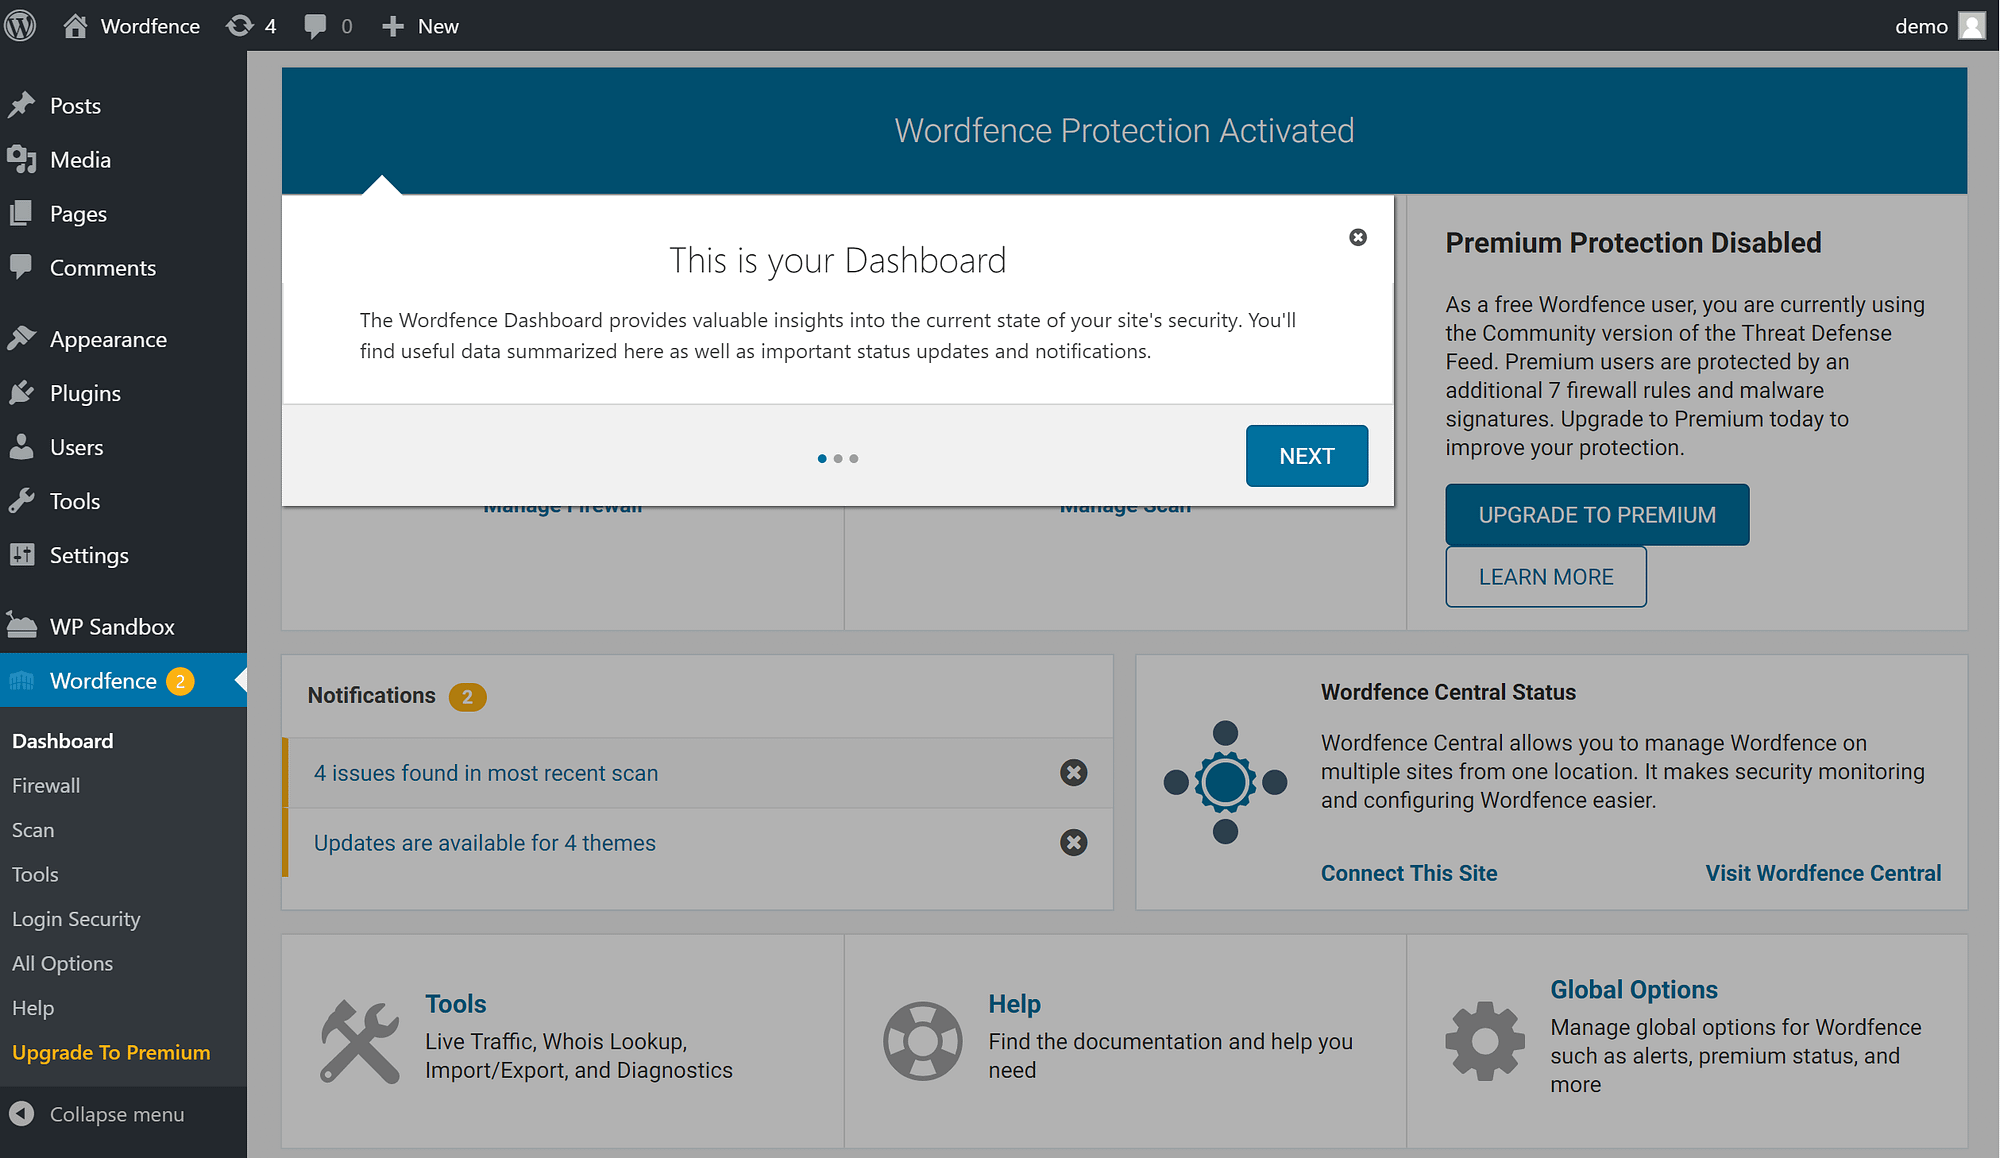 Wordfence Welcome wizard